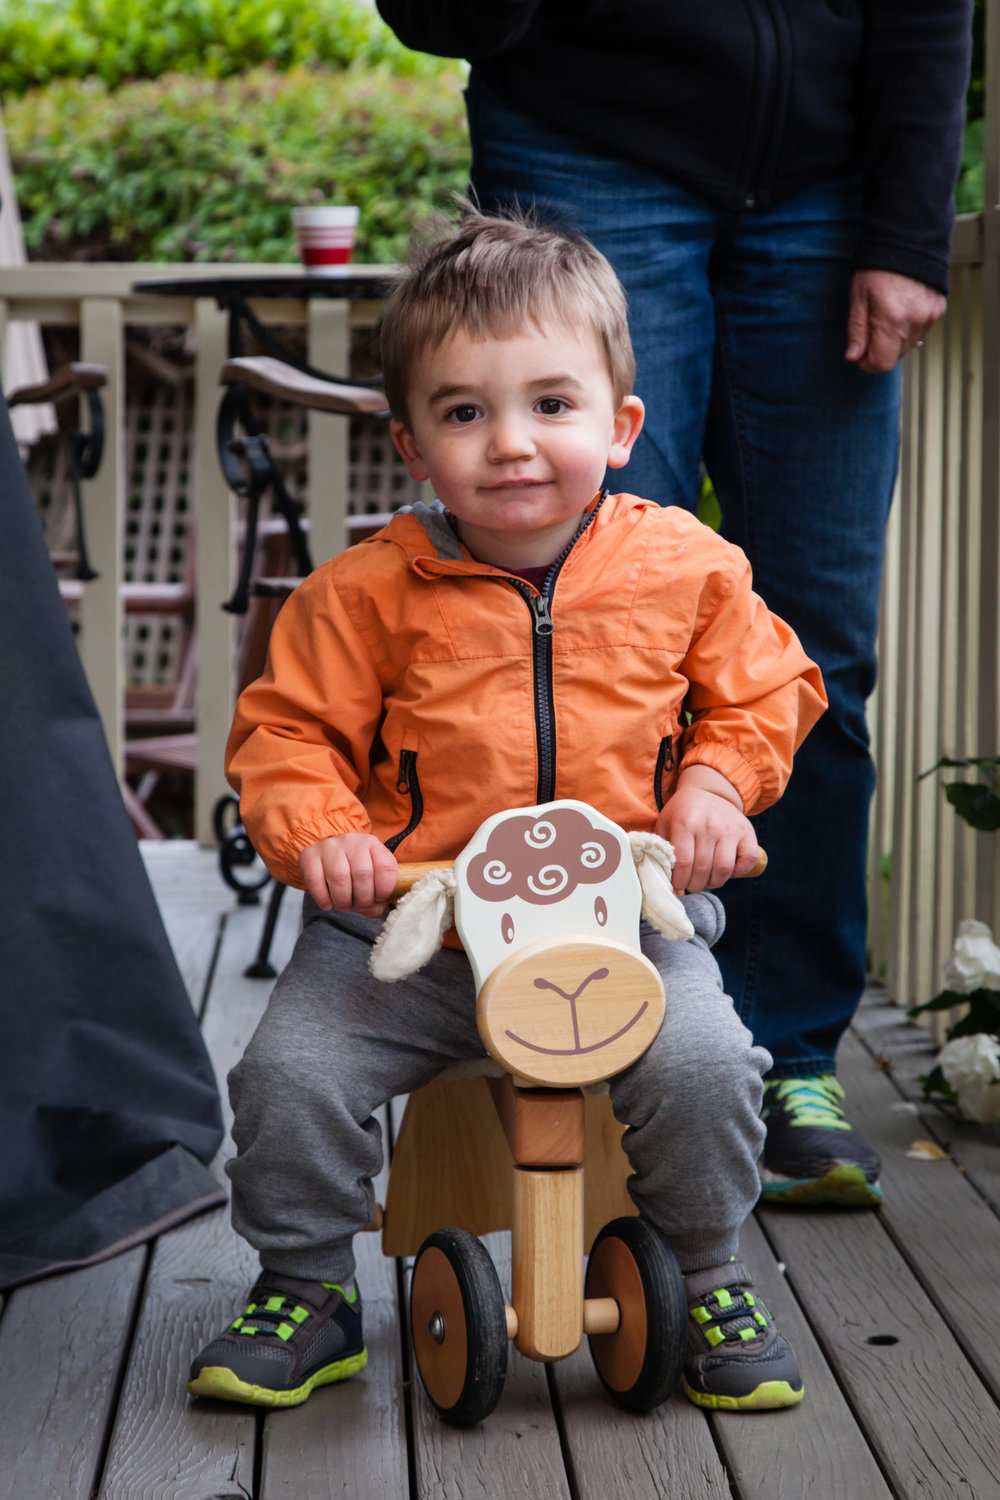 The farm had a little sheep bike. A huge hit with Lee!